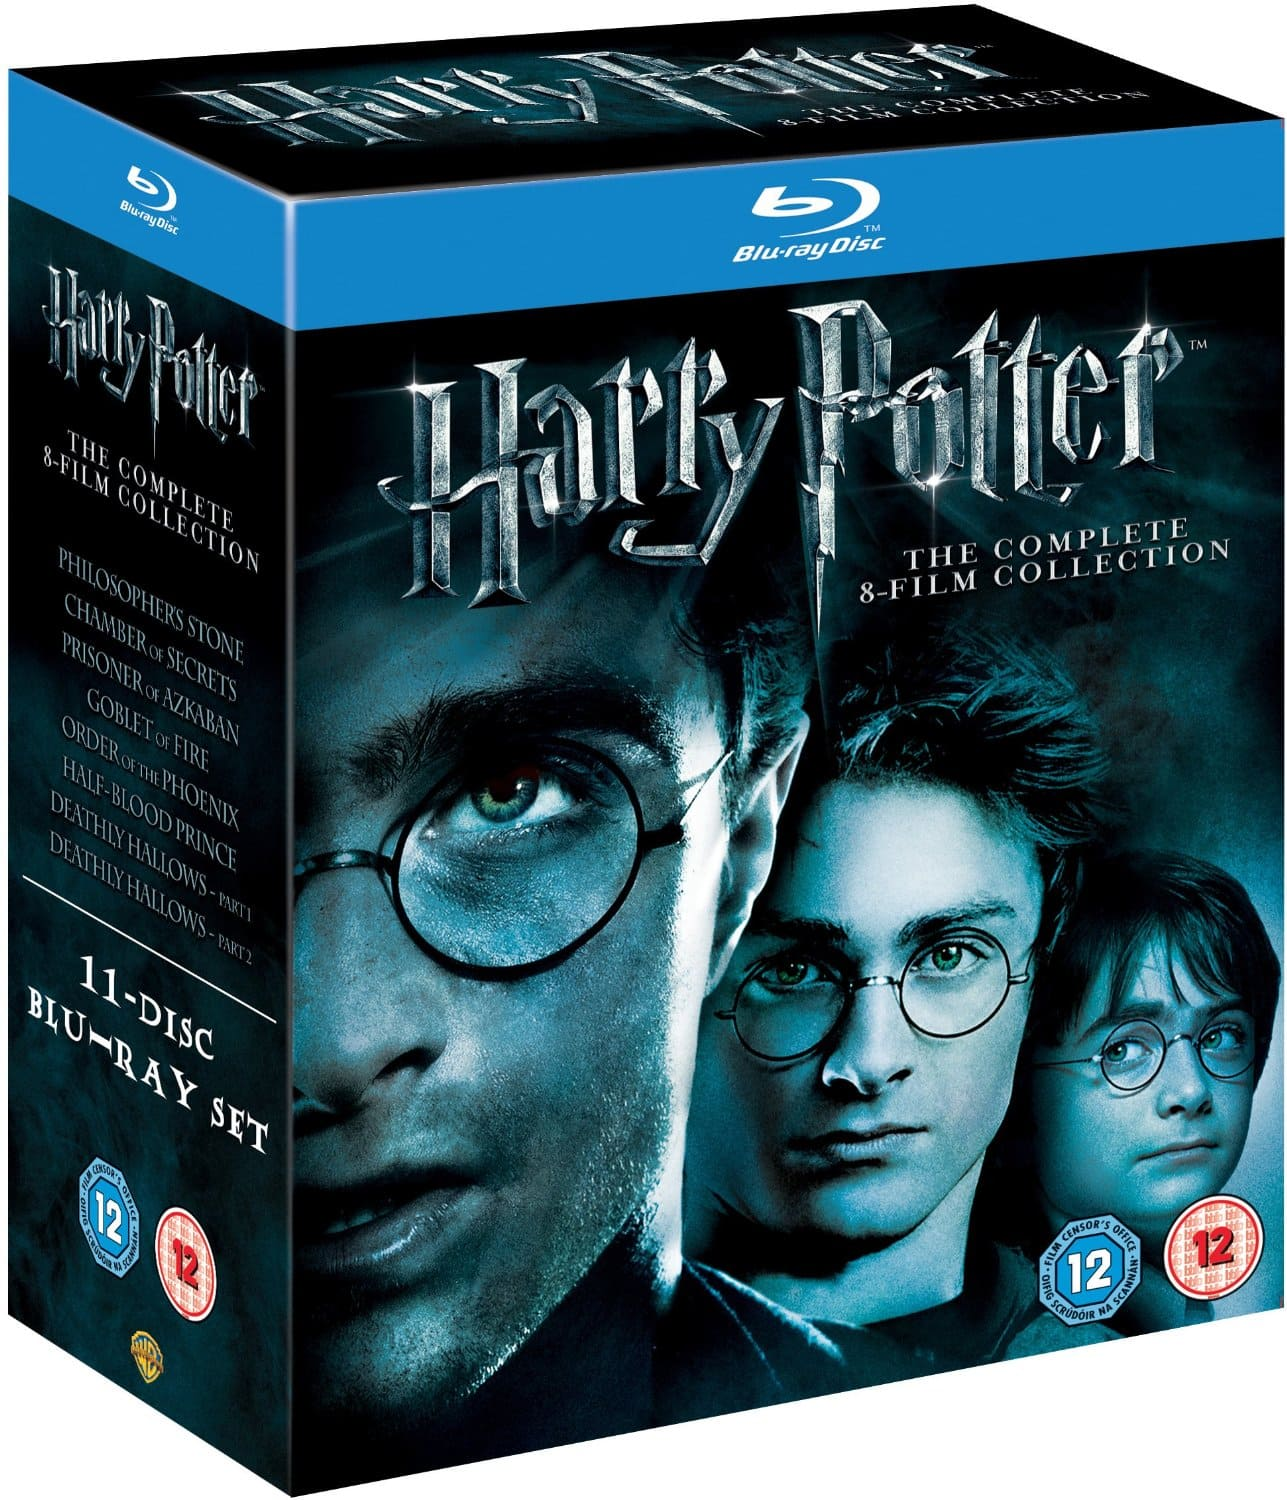 Harry Potter: The Complete 8-Film Collection (Blu-ray)  $28